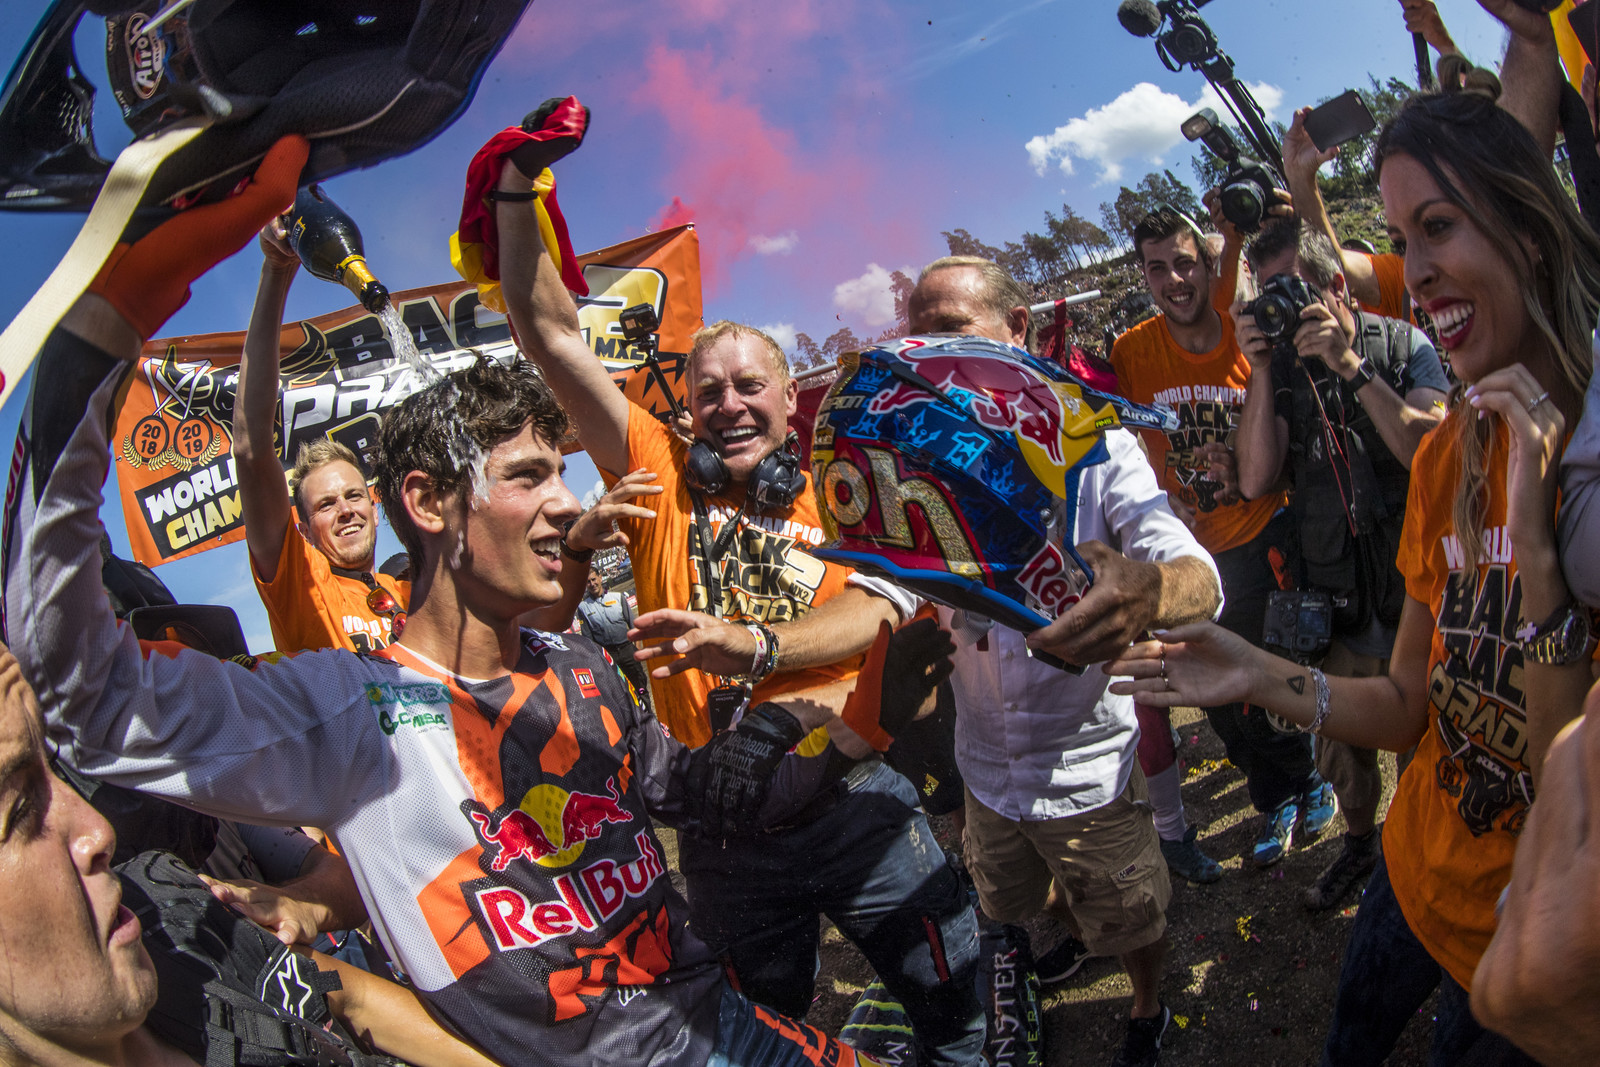 His season was pretty amazing and while he went 1 - 4 for third overall in the Swedish GP, going 1 - 1 at 12 of the races this year so far proves his domination in the MX2 class.